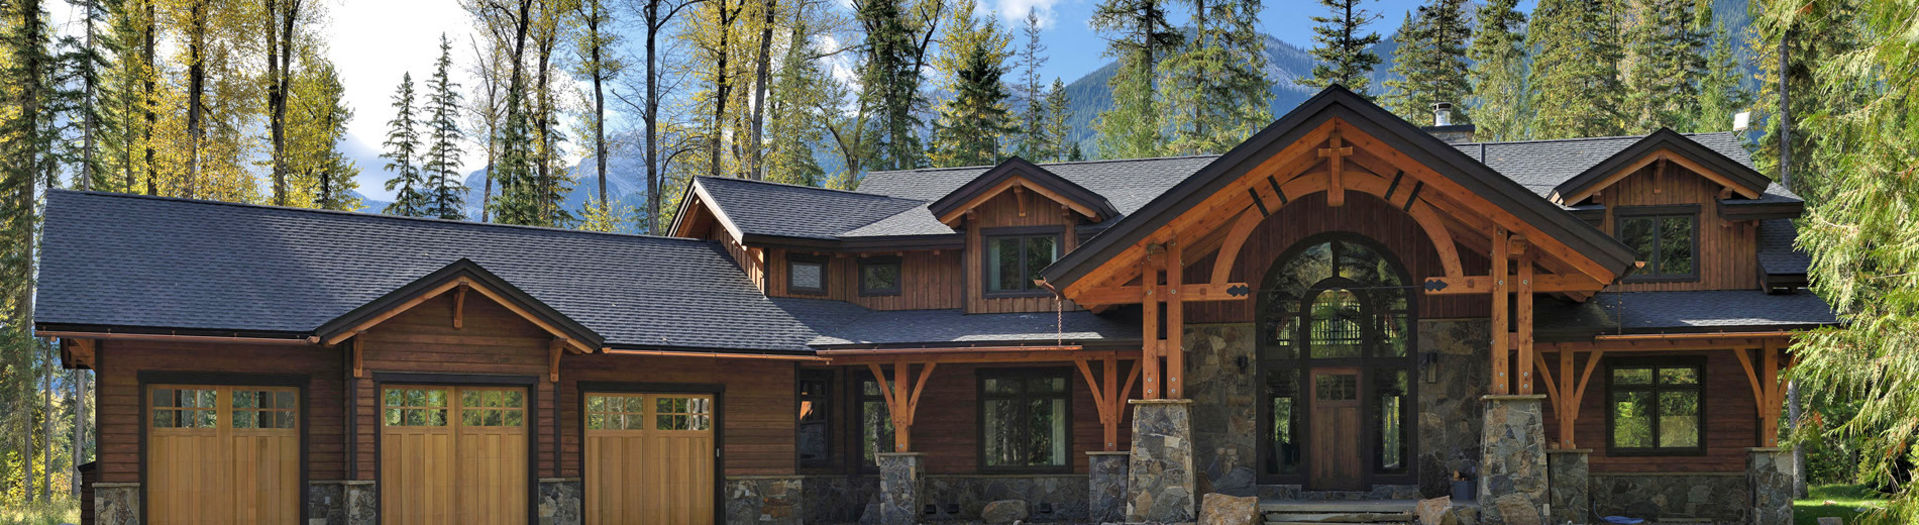 Canadian timberframes ranch style timberframes for Ranch style timber frame homes